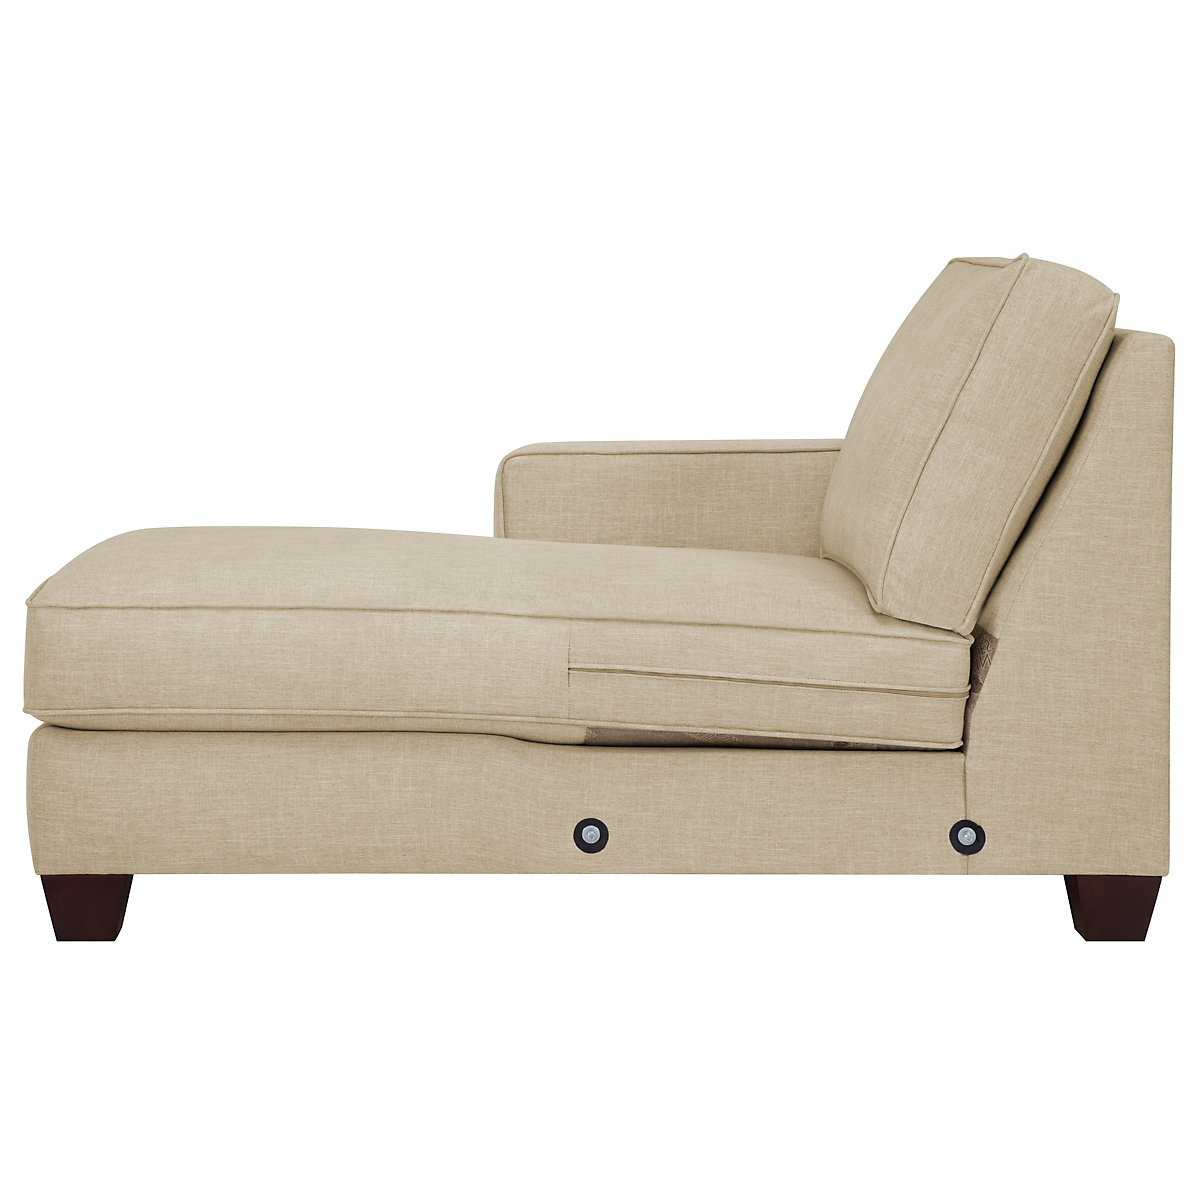 City furniture york beige fabric large left chaise sectional for Beige sectional with chaise